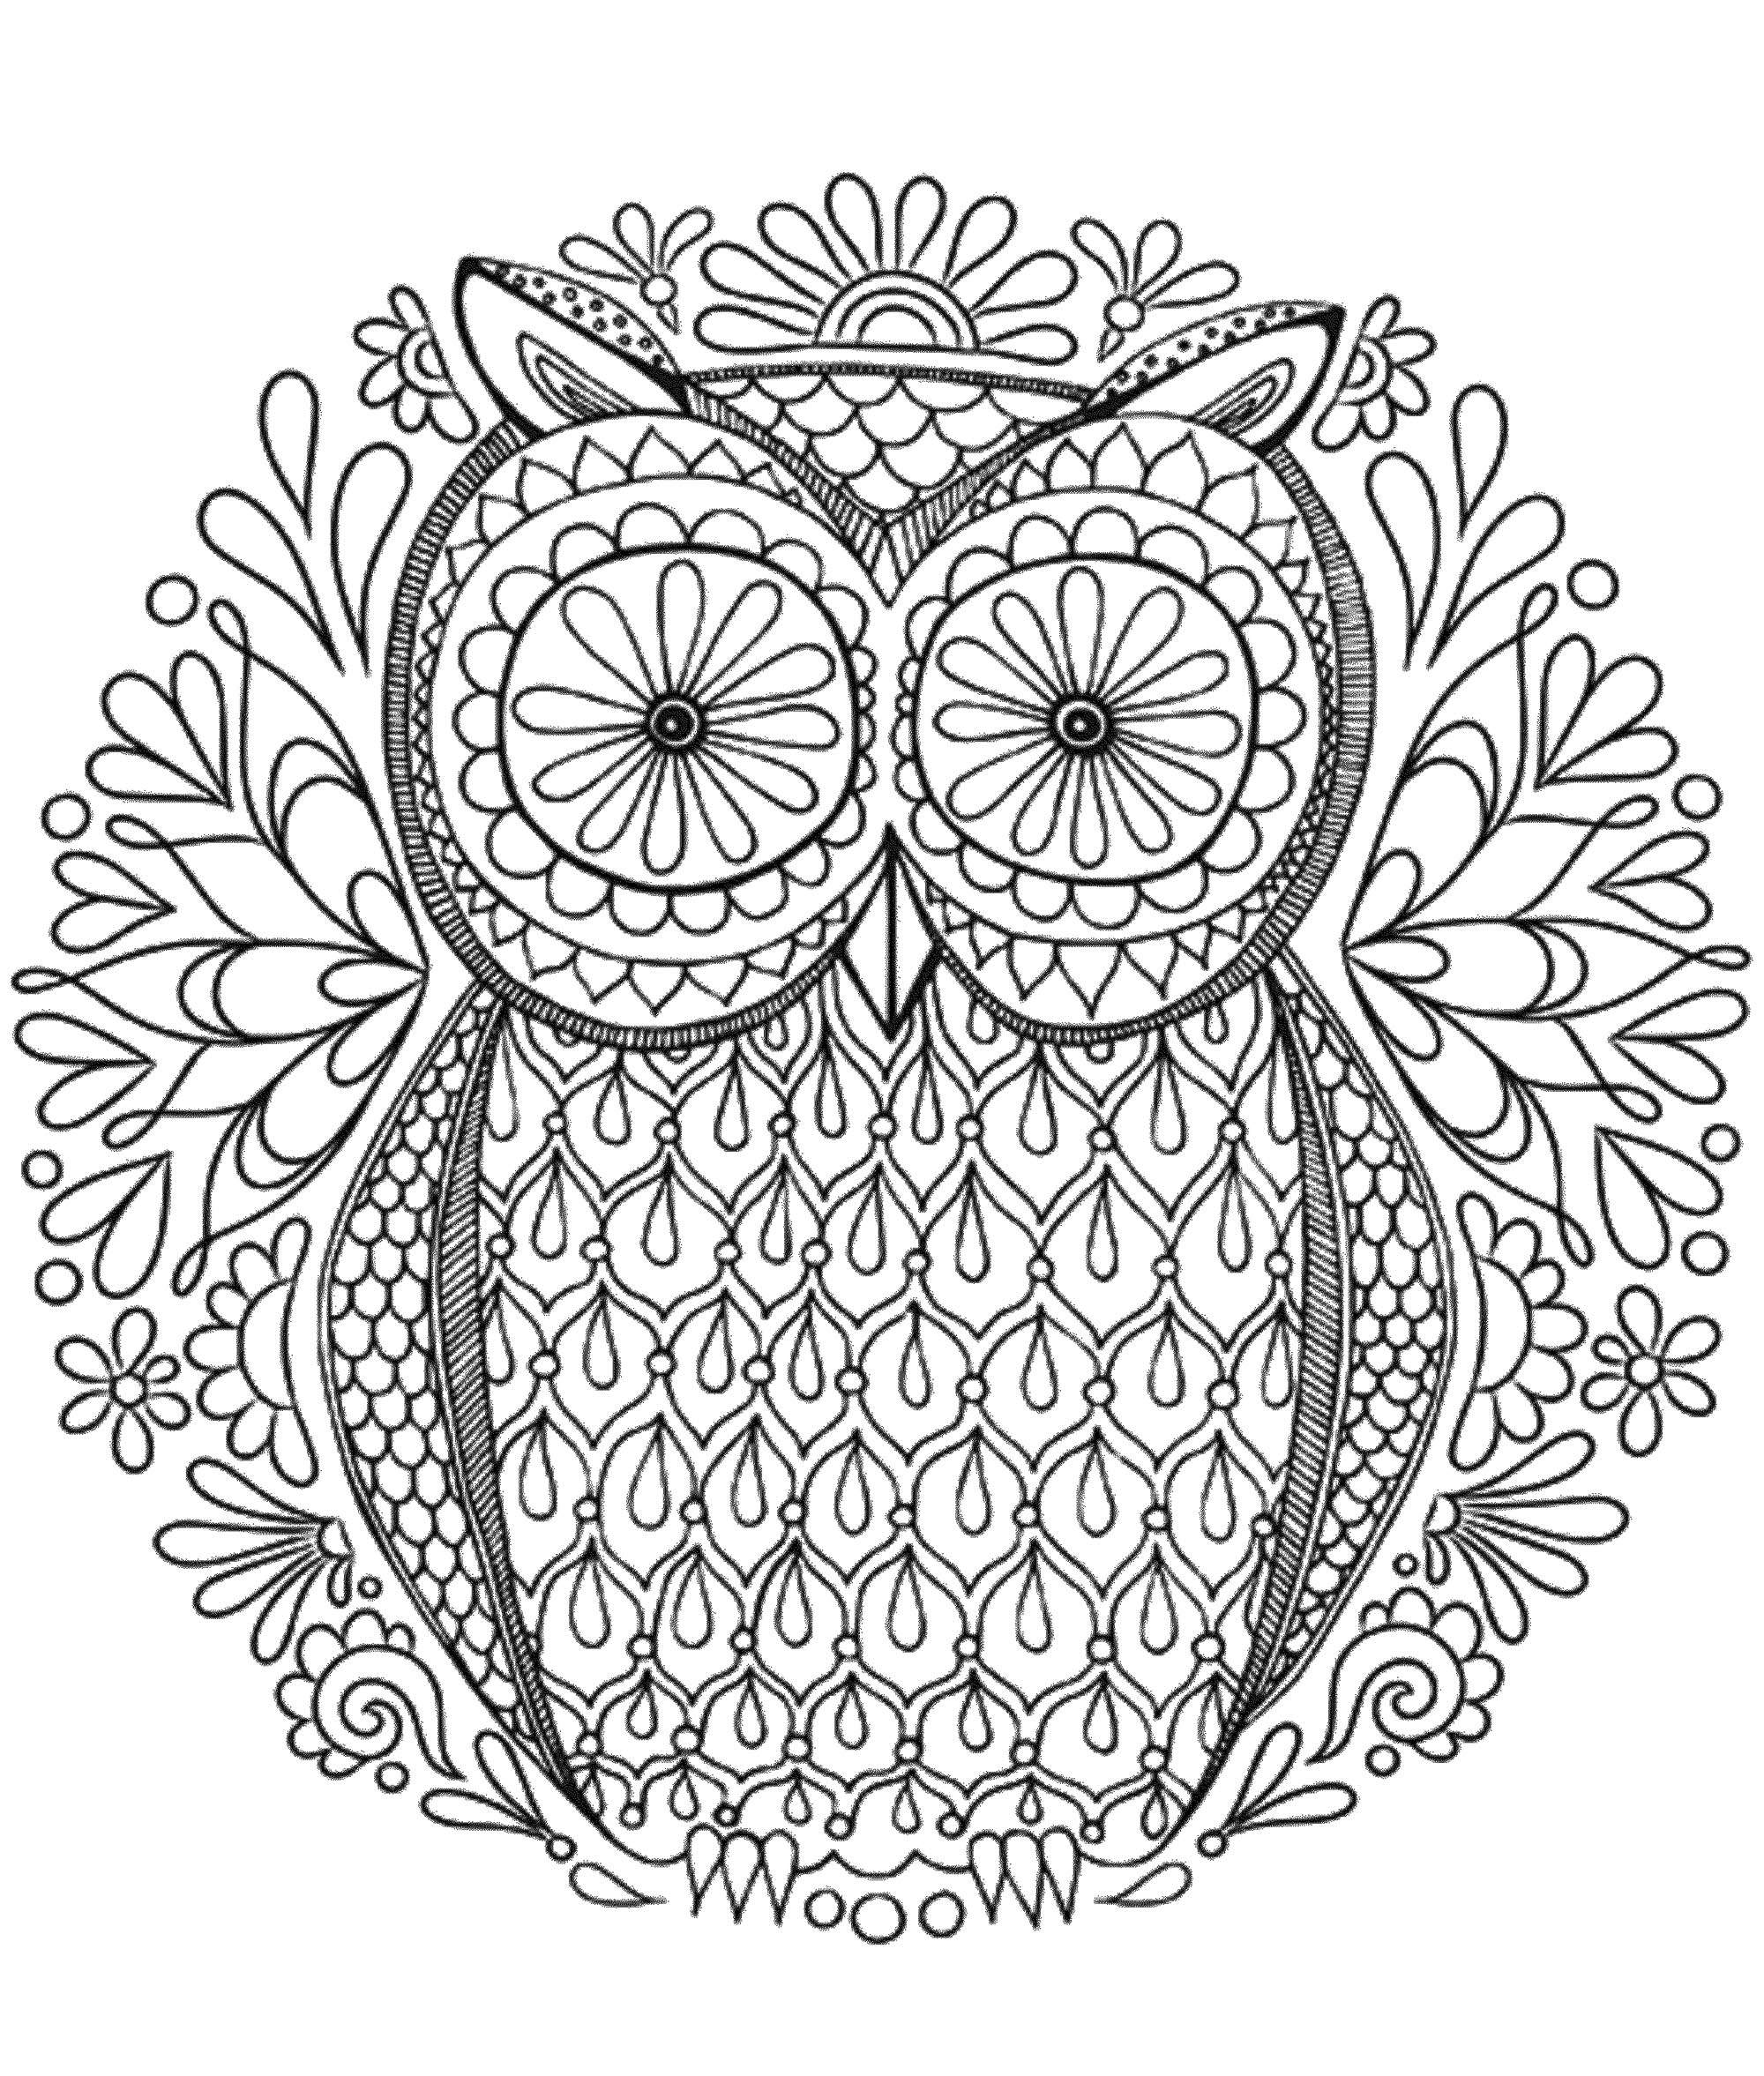 coloring pictures mandala coloring to calm volume one mandalas pictures coloring mandala